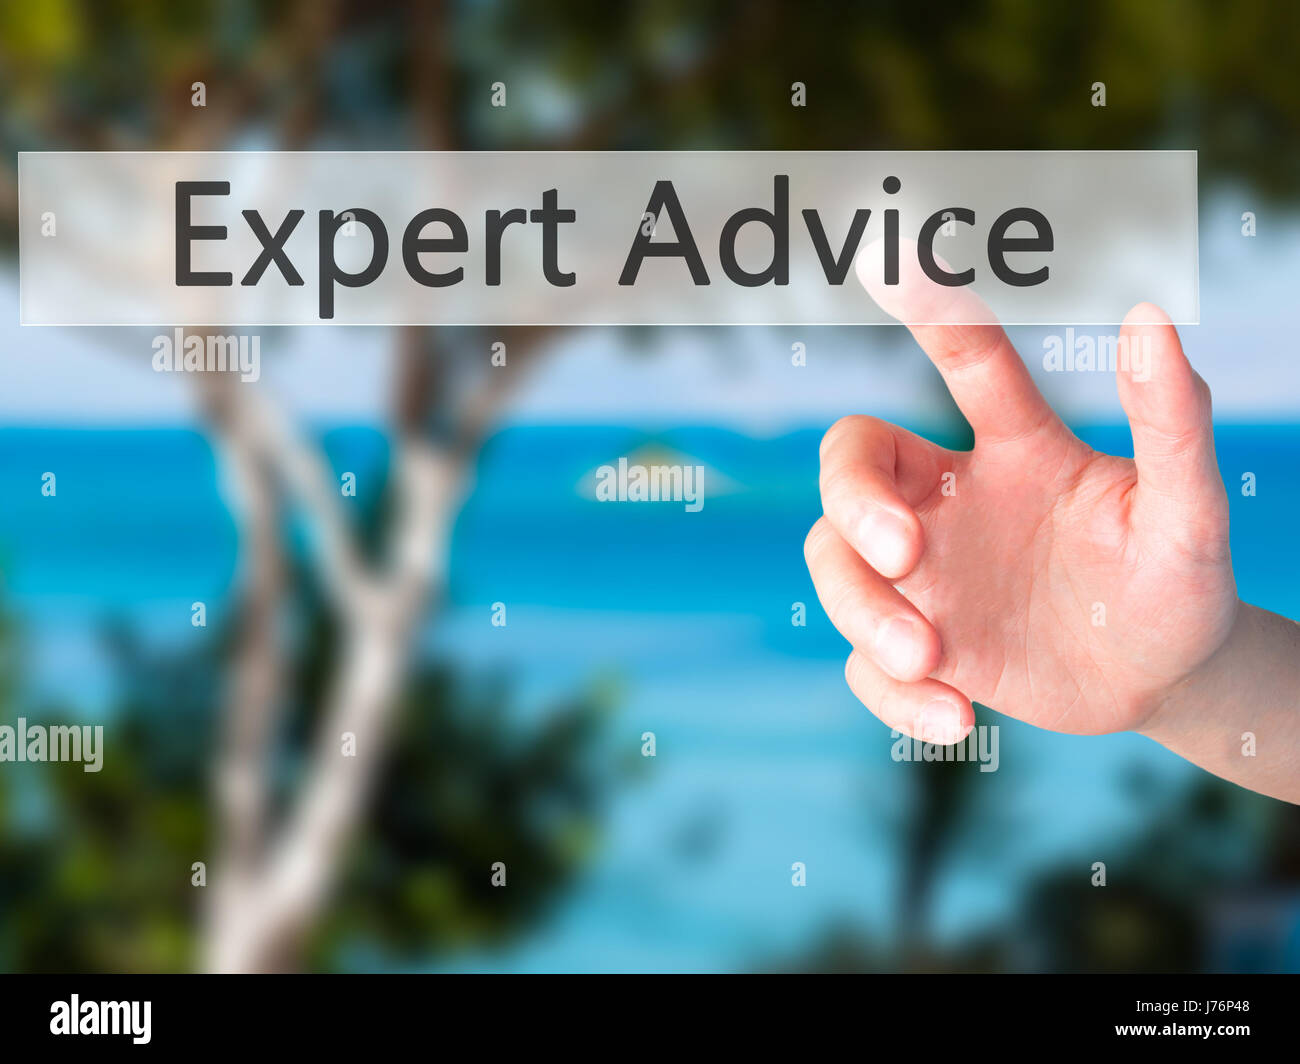 Expert-Advice - Hand pressing a button on blurred background